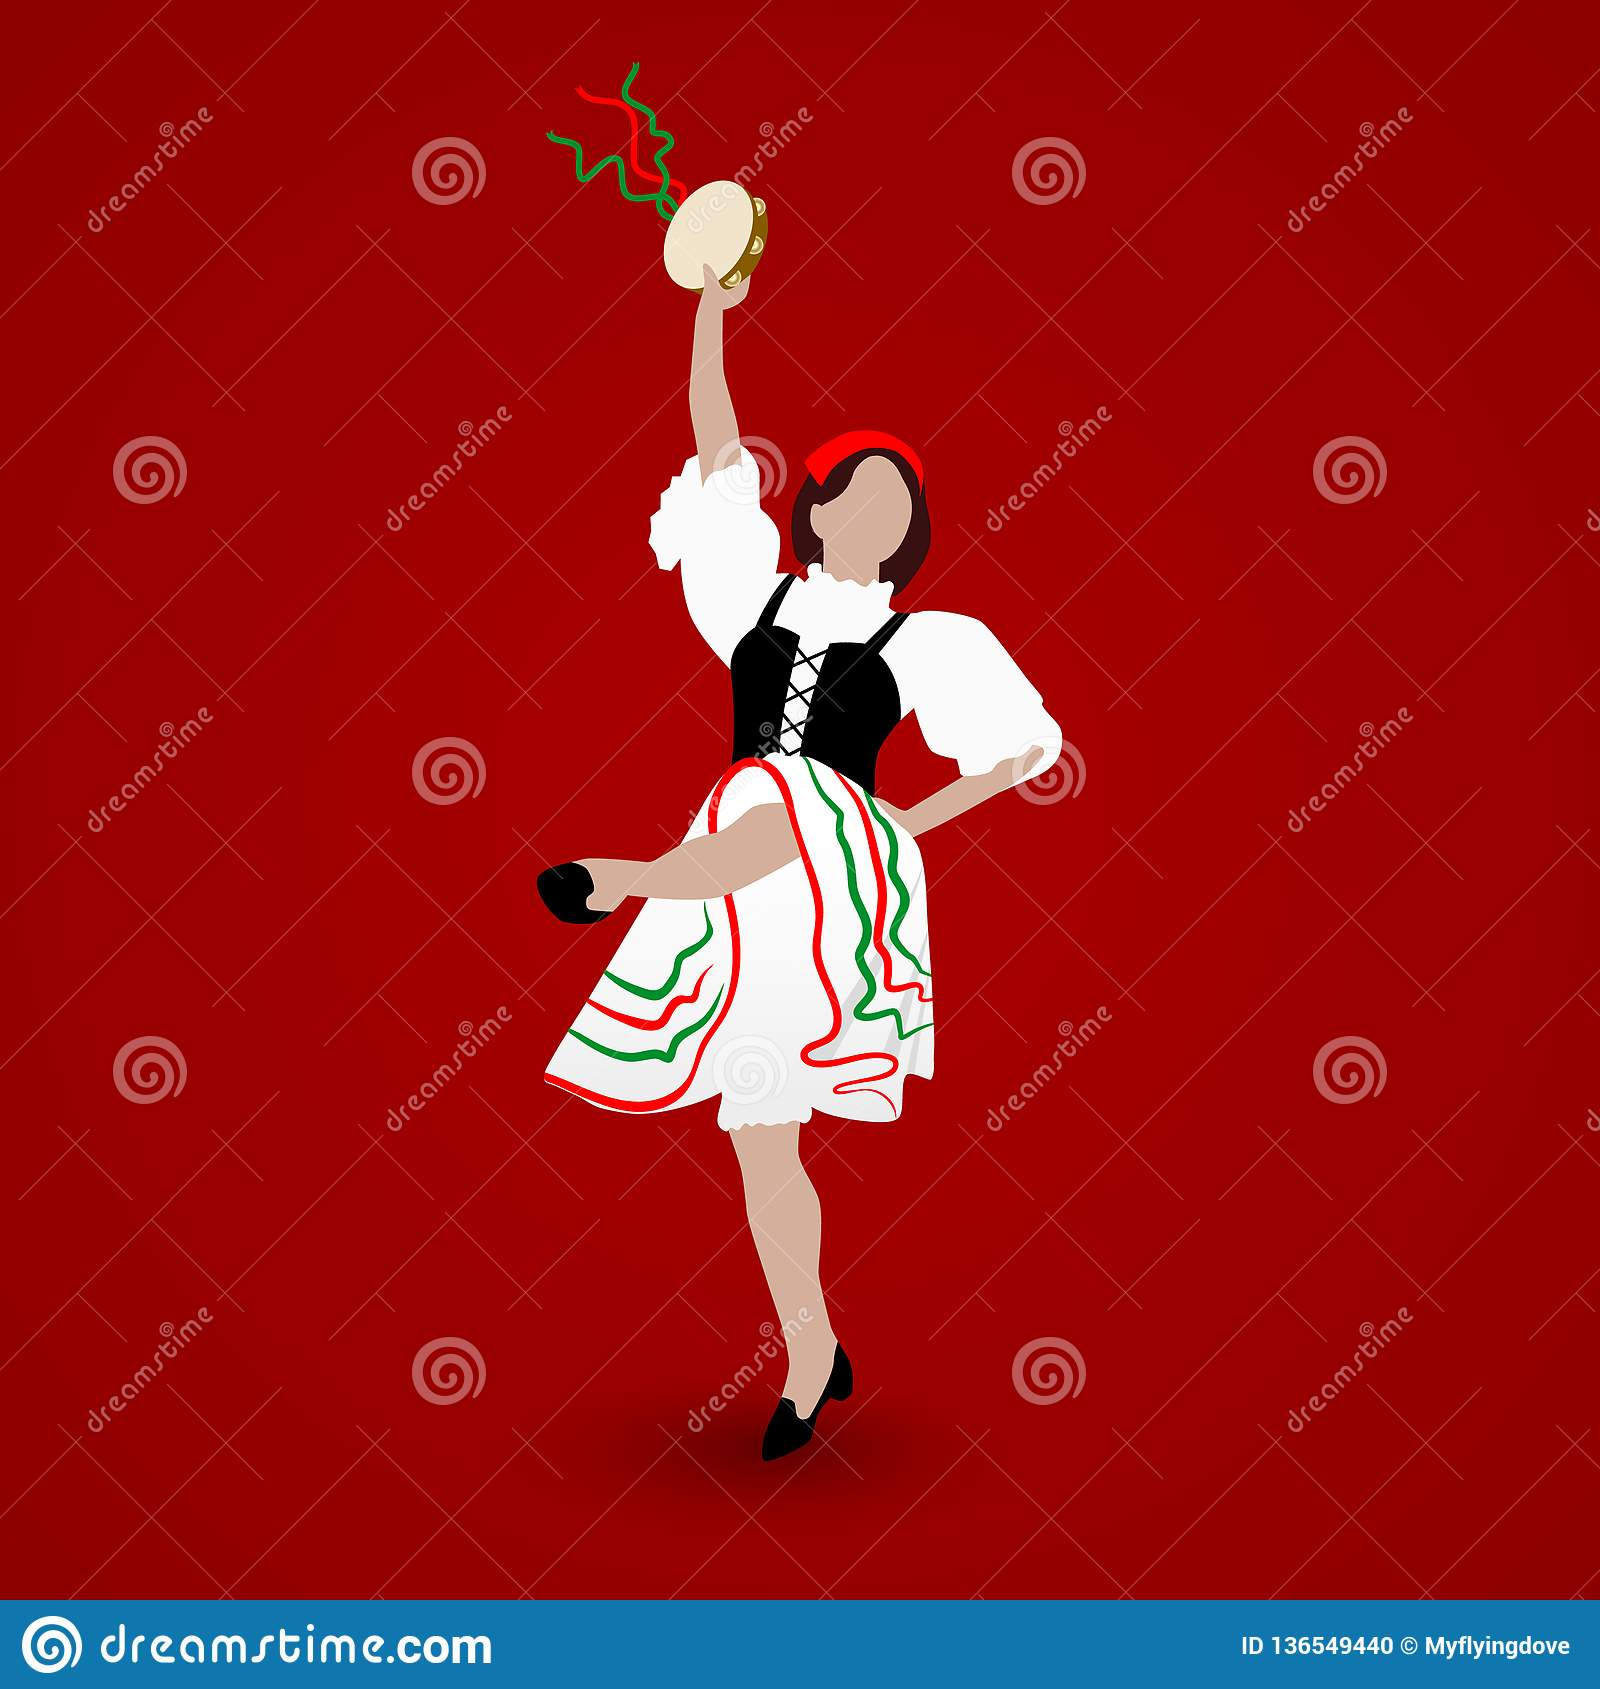 A young girl dressed in a national costume dancing an Italian tarantella with a tambourine on red background